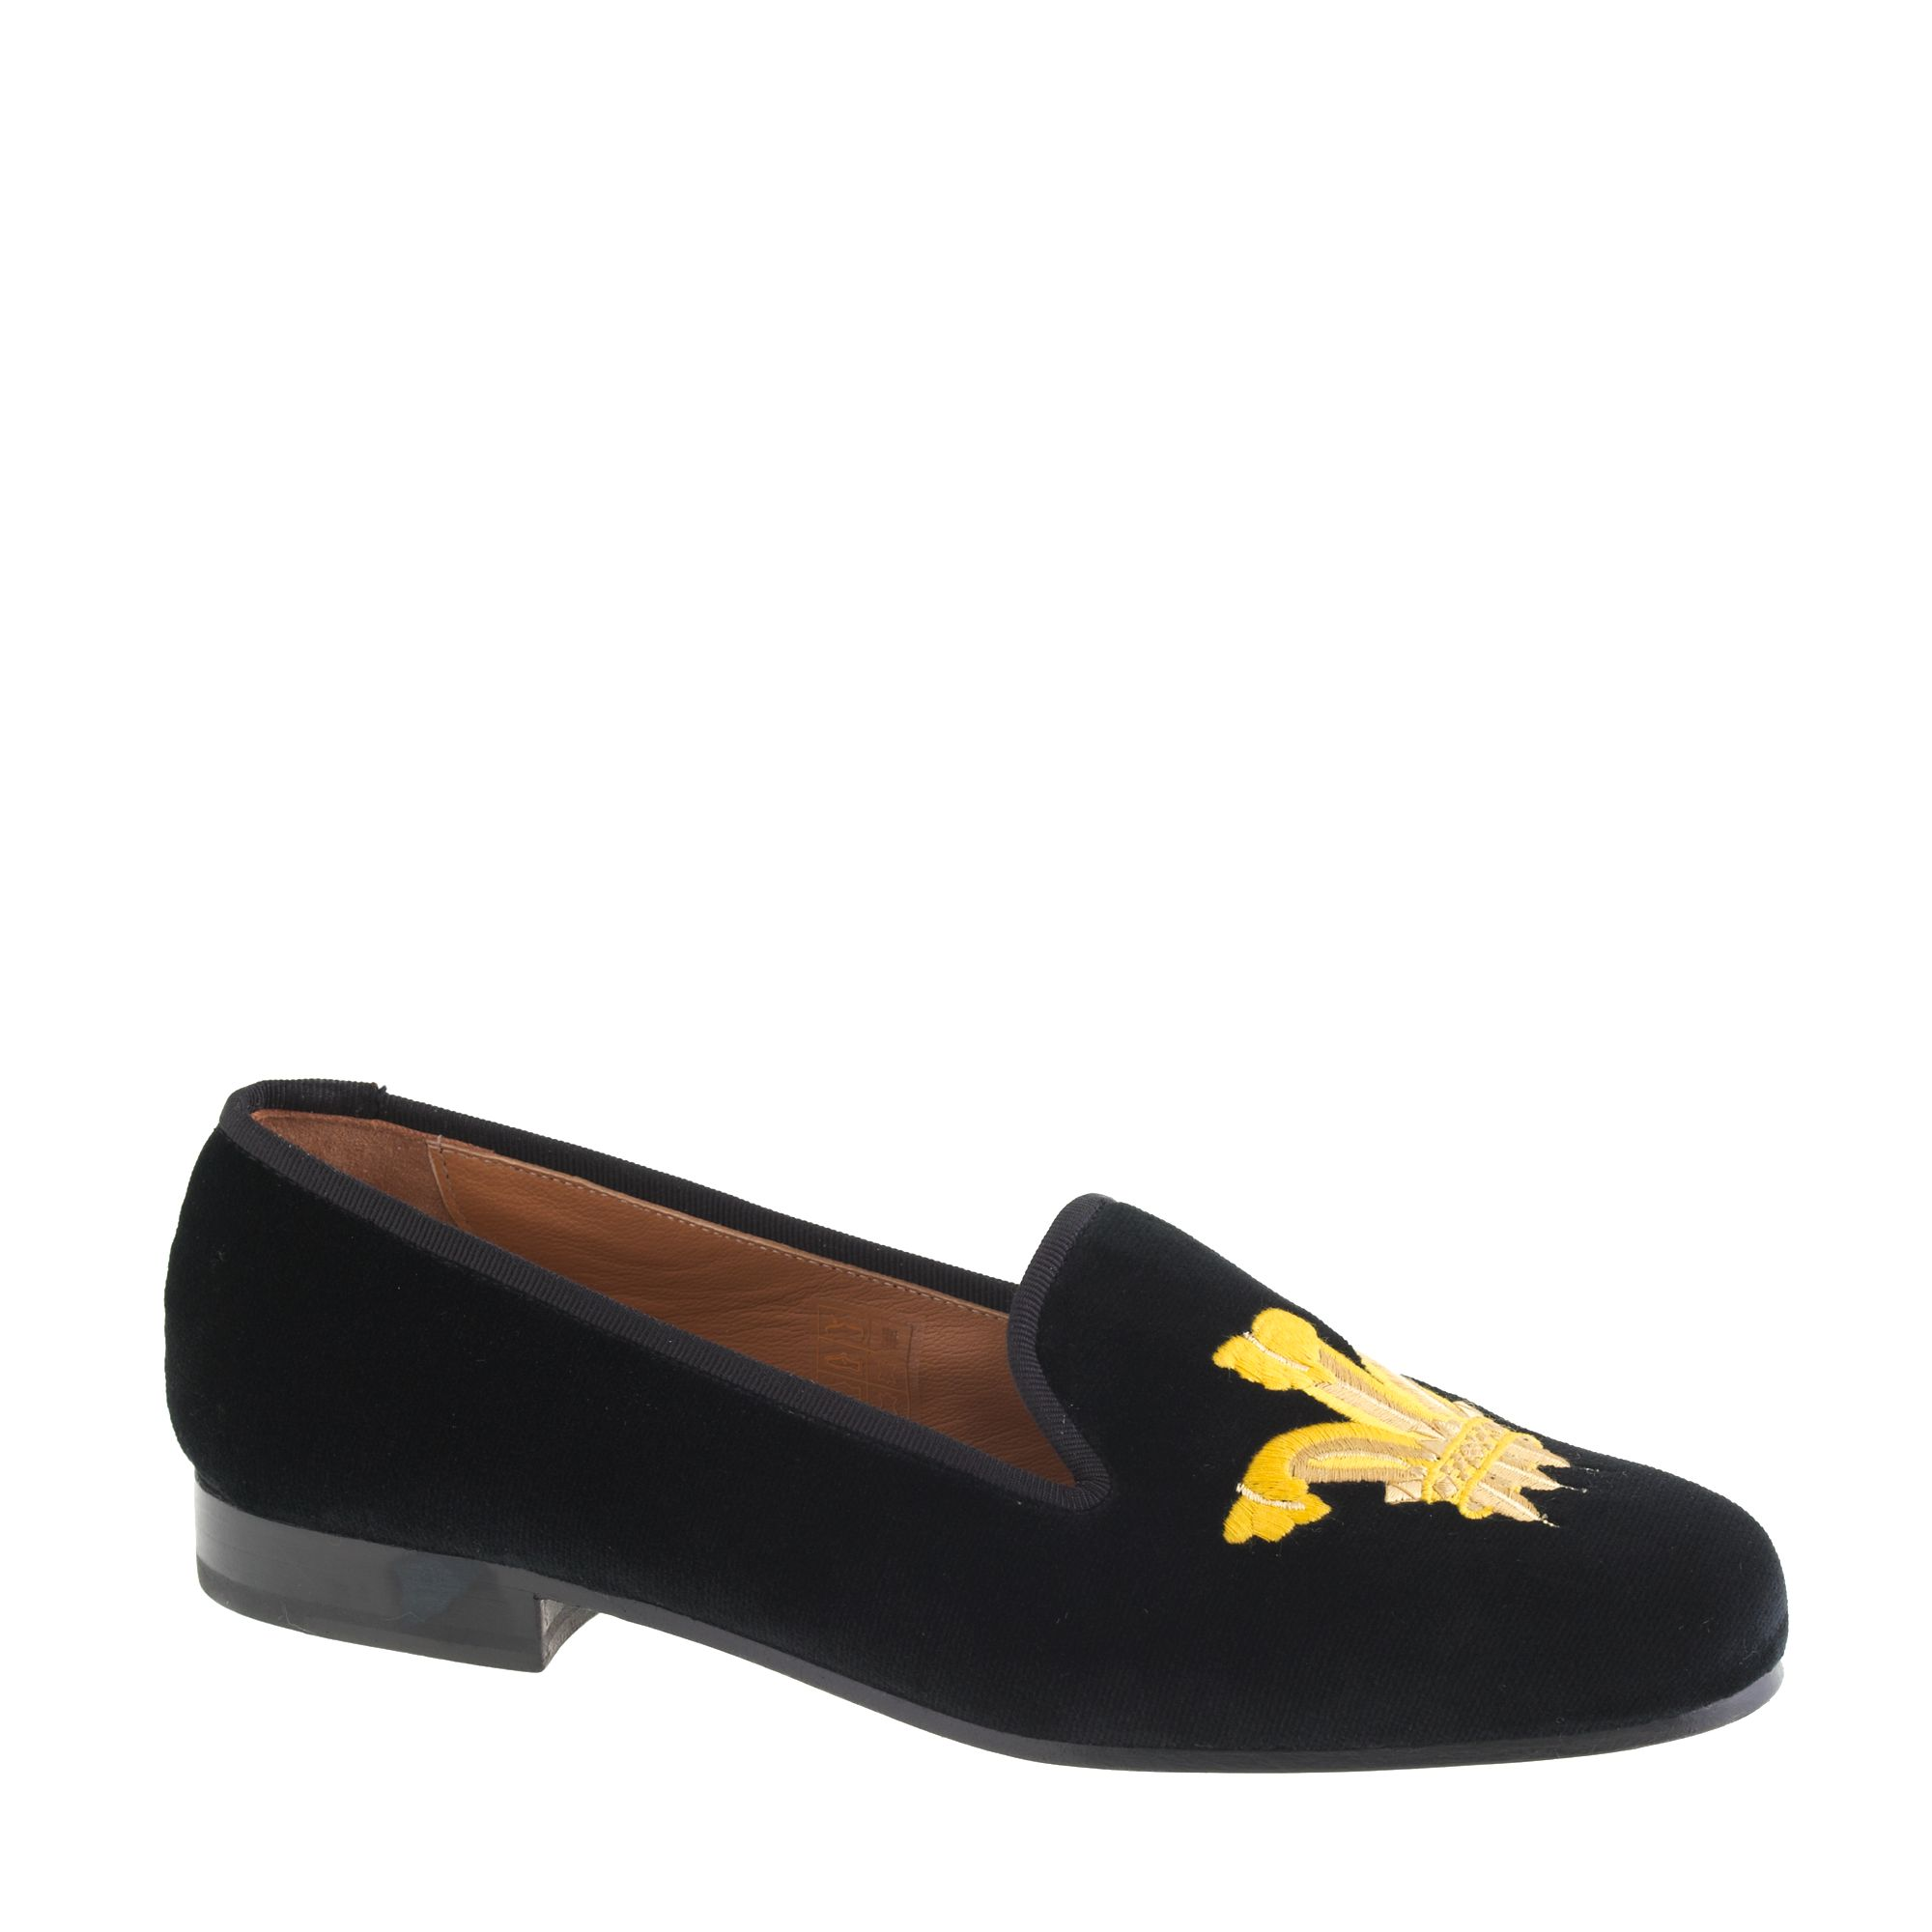 Stubbs and wootton for classic velvet slippers in for J crew bedroom slippers